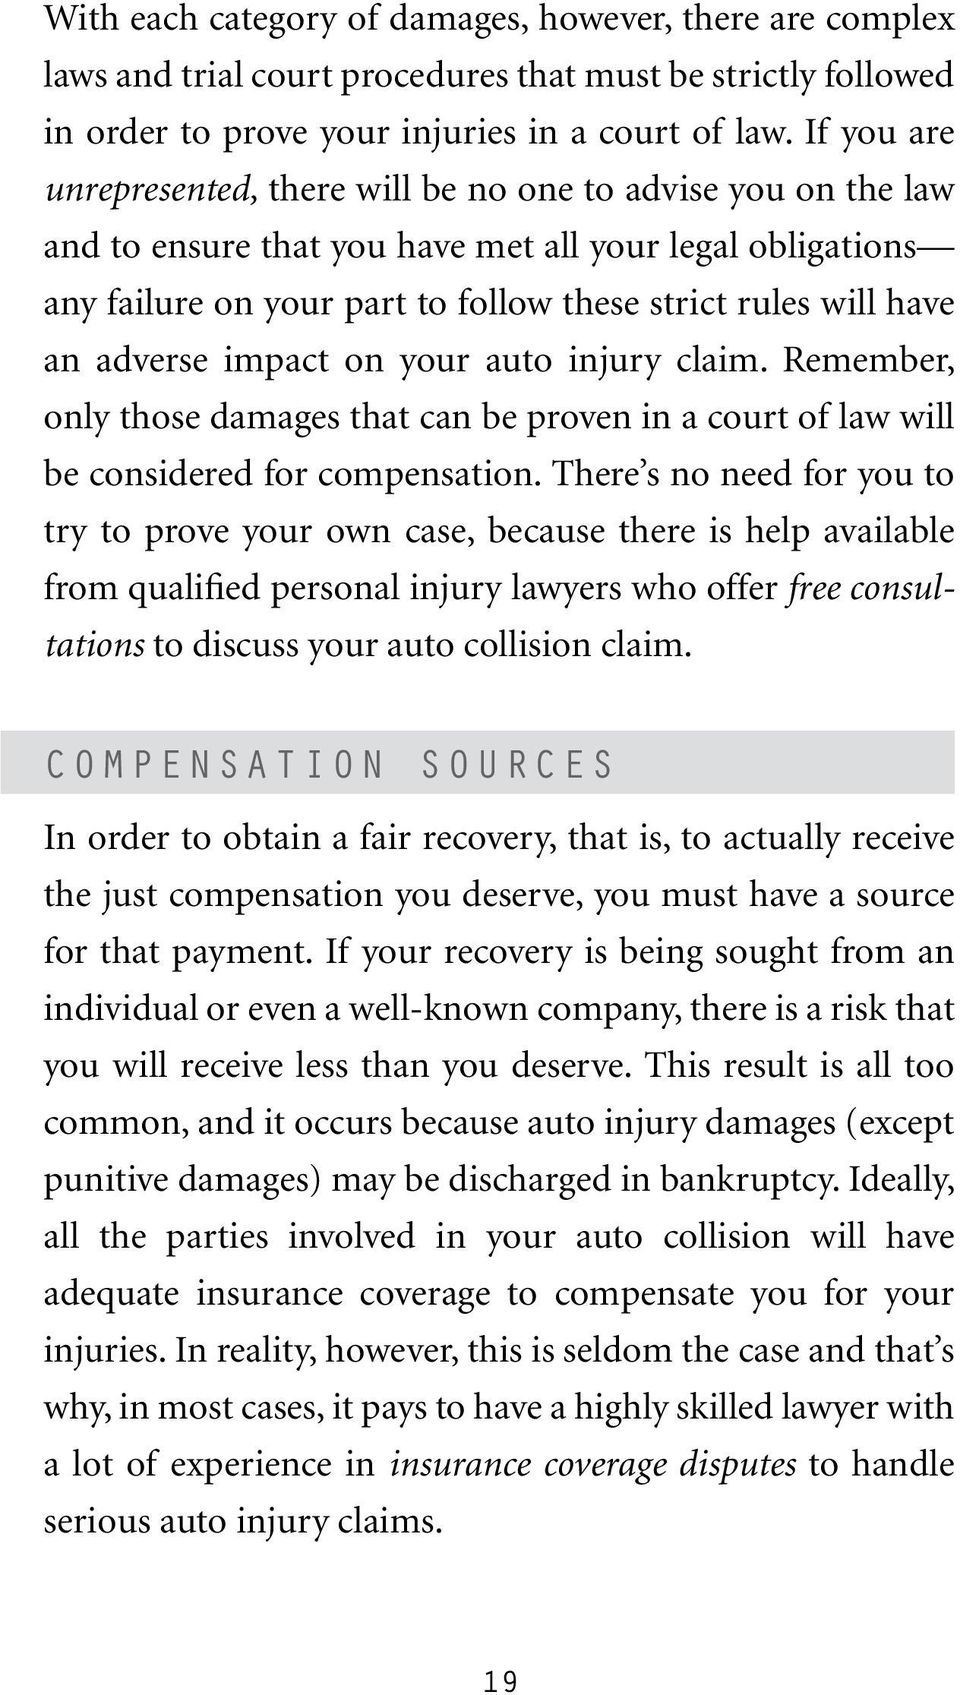 adverse impact on your auto injury claim. Remember, only those damages that can be proven in a court of law will be considered for compensation.